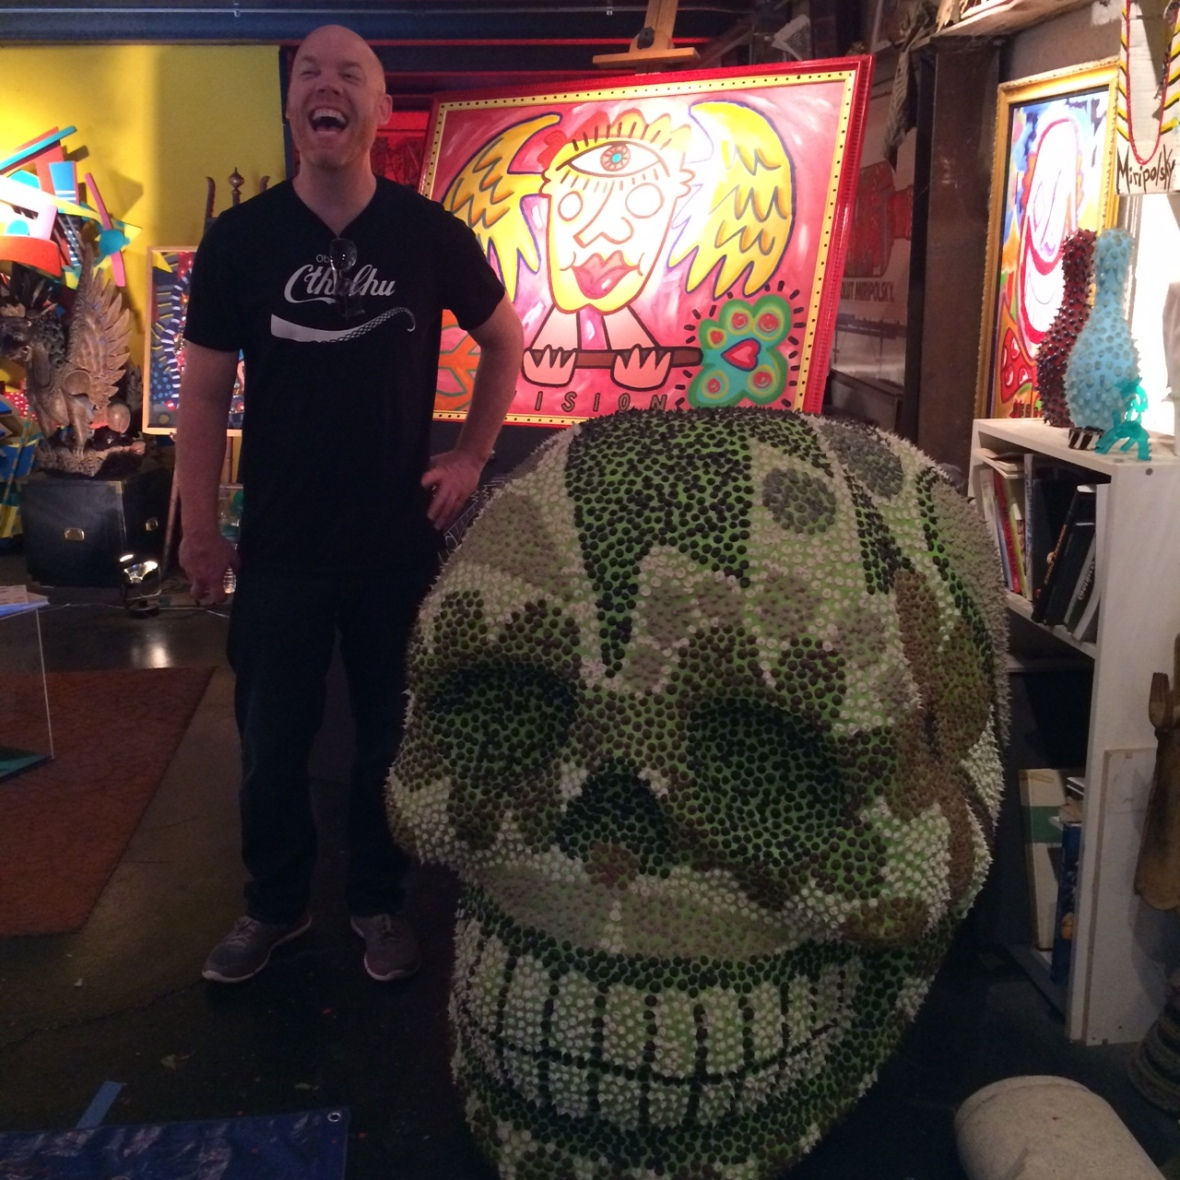 Andre Miripolsky is known for his absolute ads, costume designs for Elton John, set designs for The Tonight Show, murals for schools and Pershing Square AND this cool skull head!